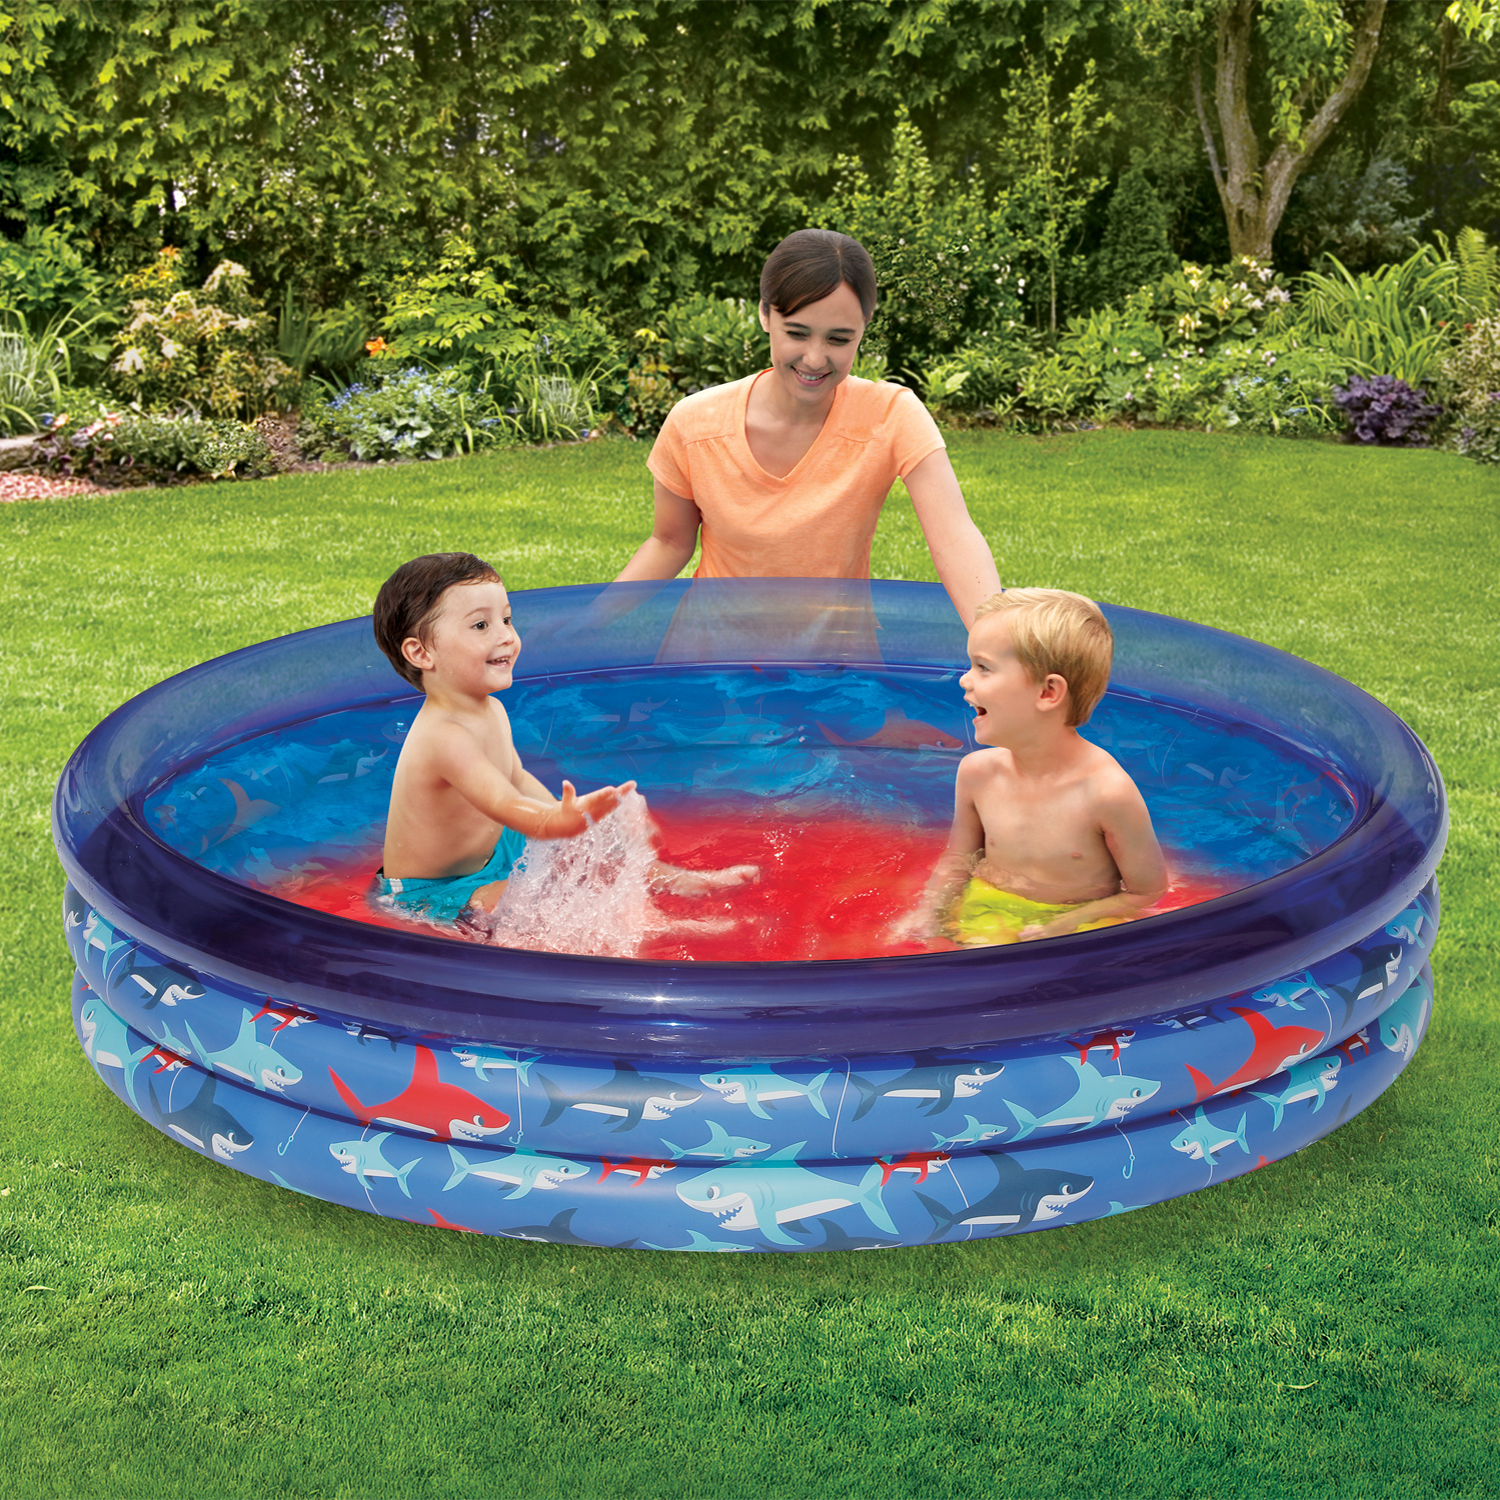 PLAY DAY BLUE 3-RING POOL